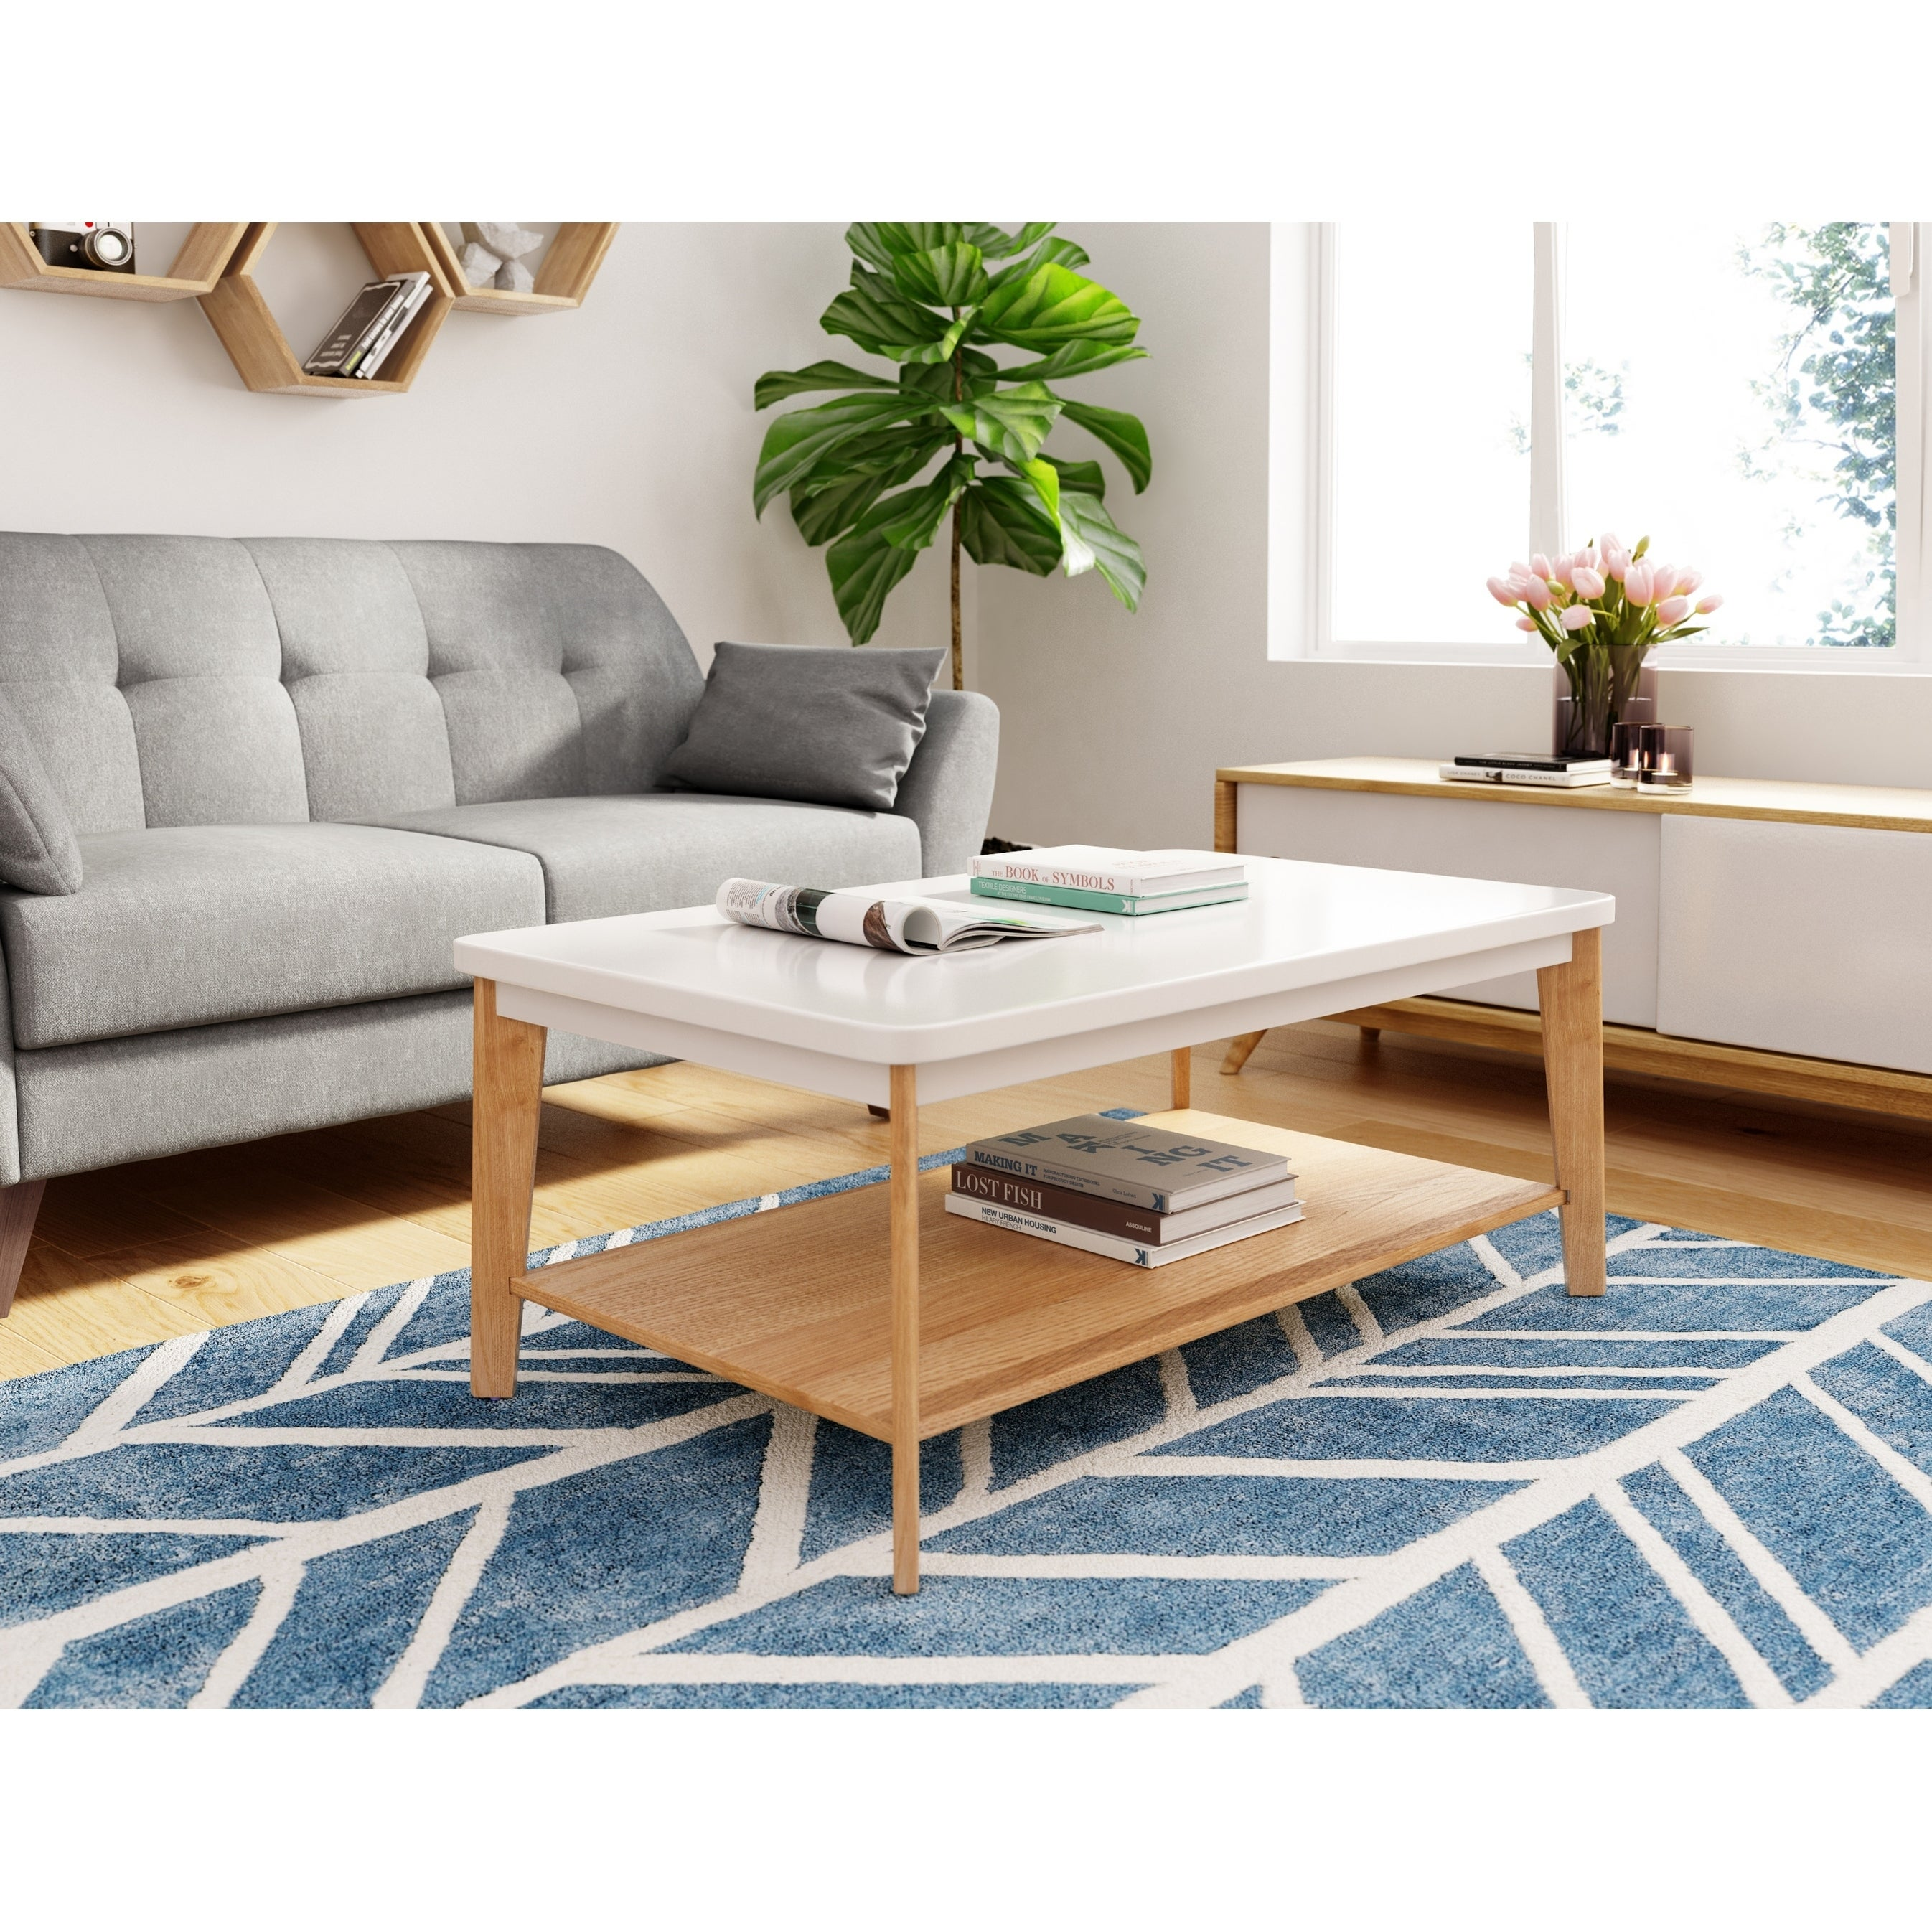 Universal Expert Remus Modern Oak/White Wood Coffee Table with Shelf